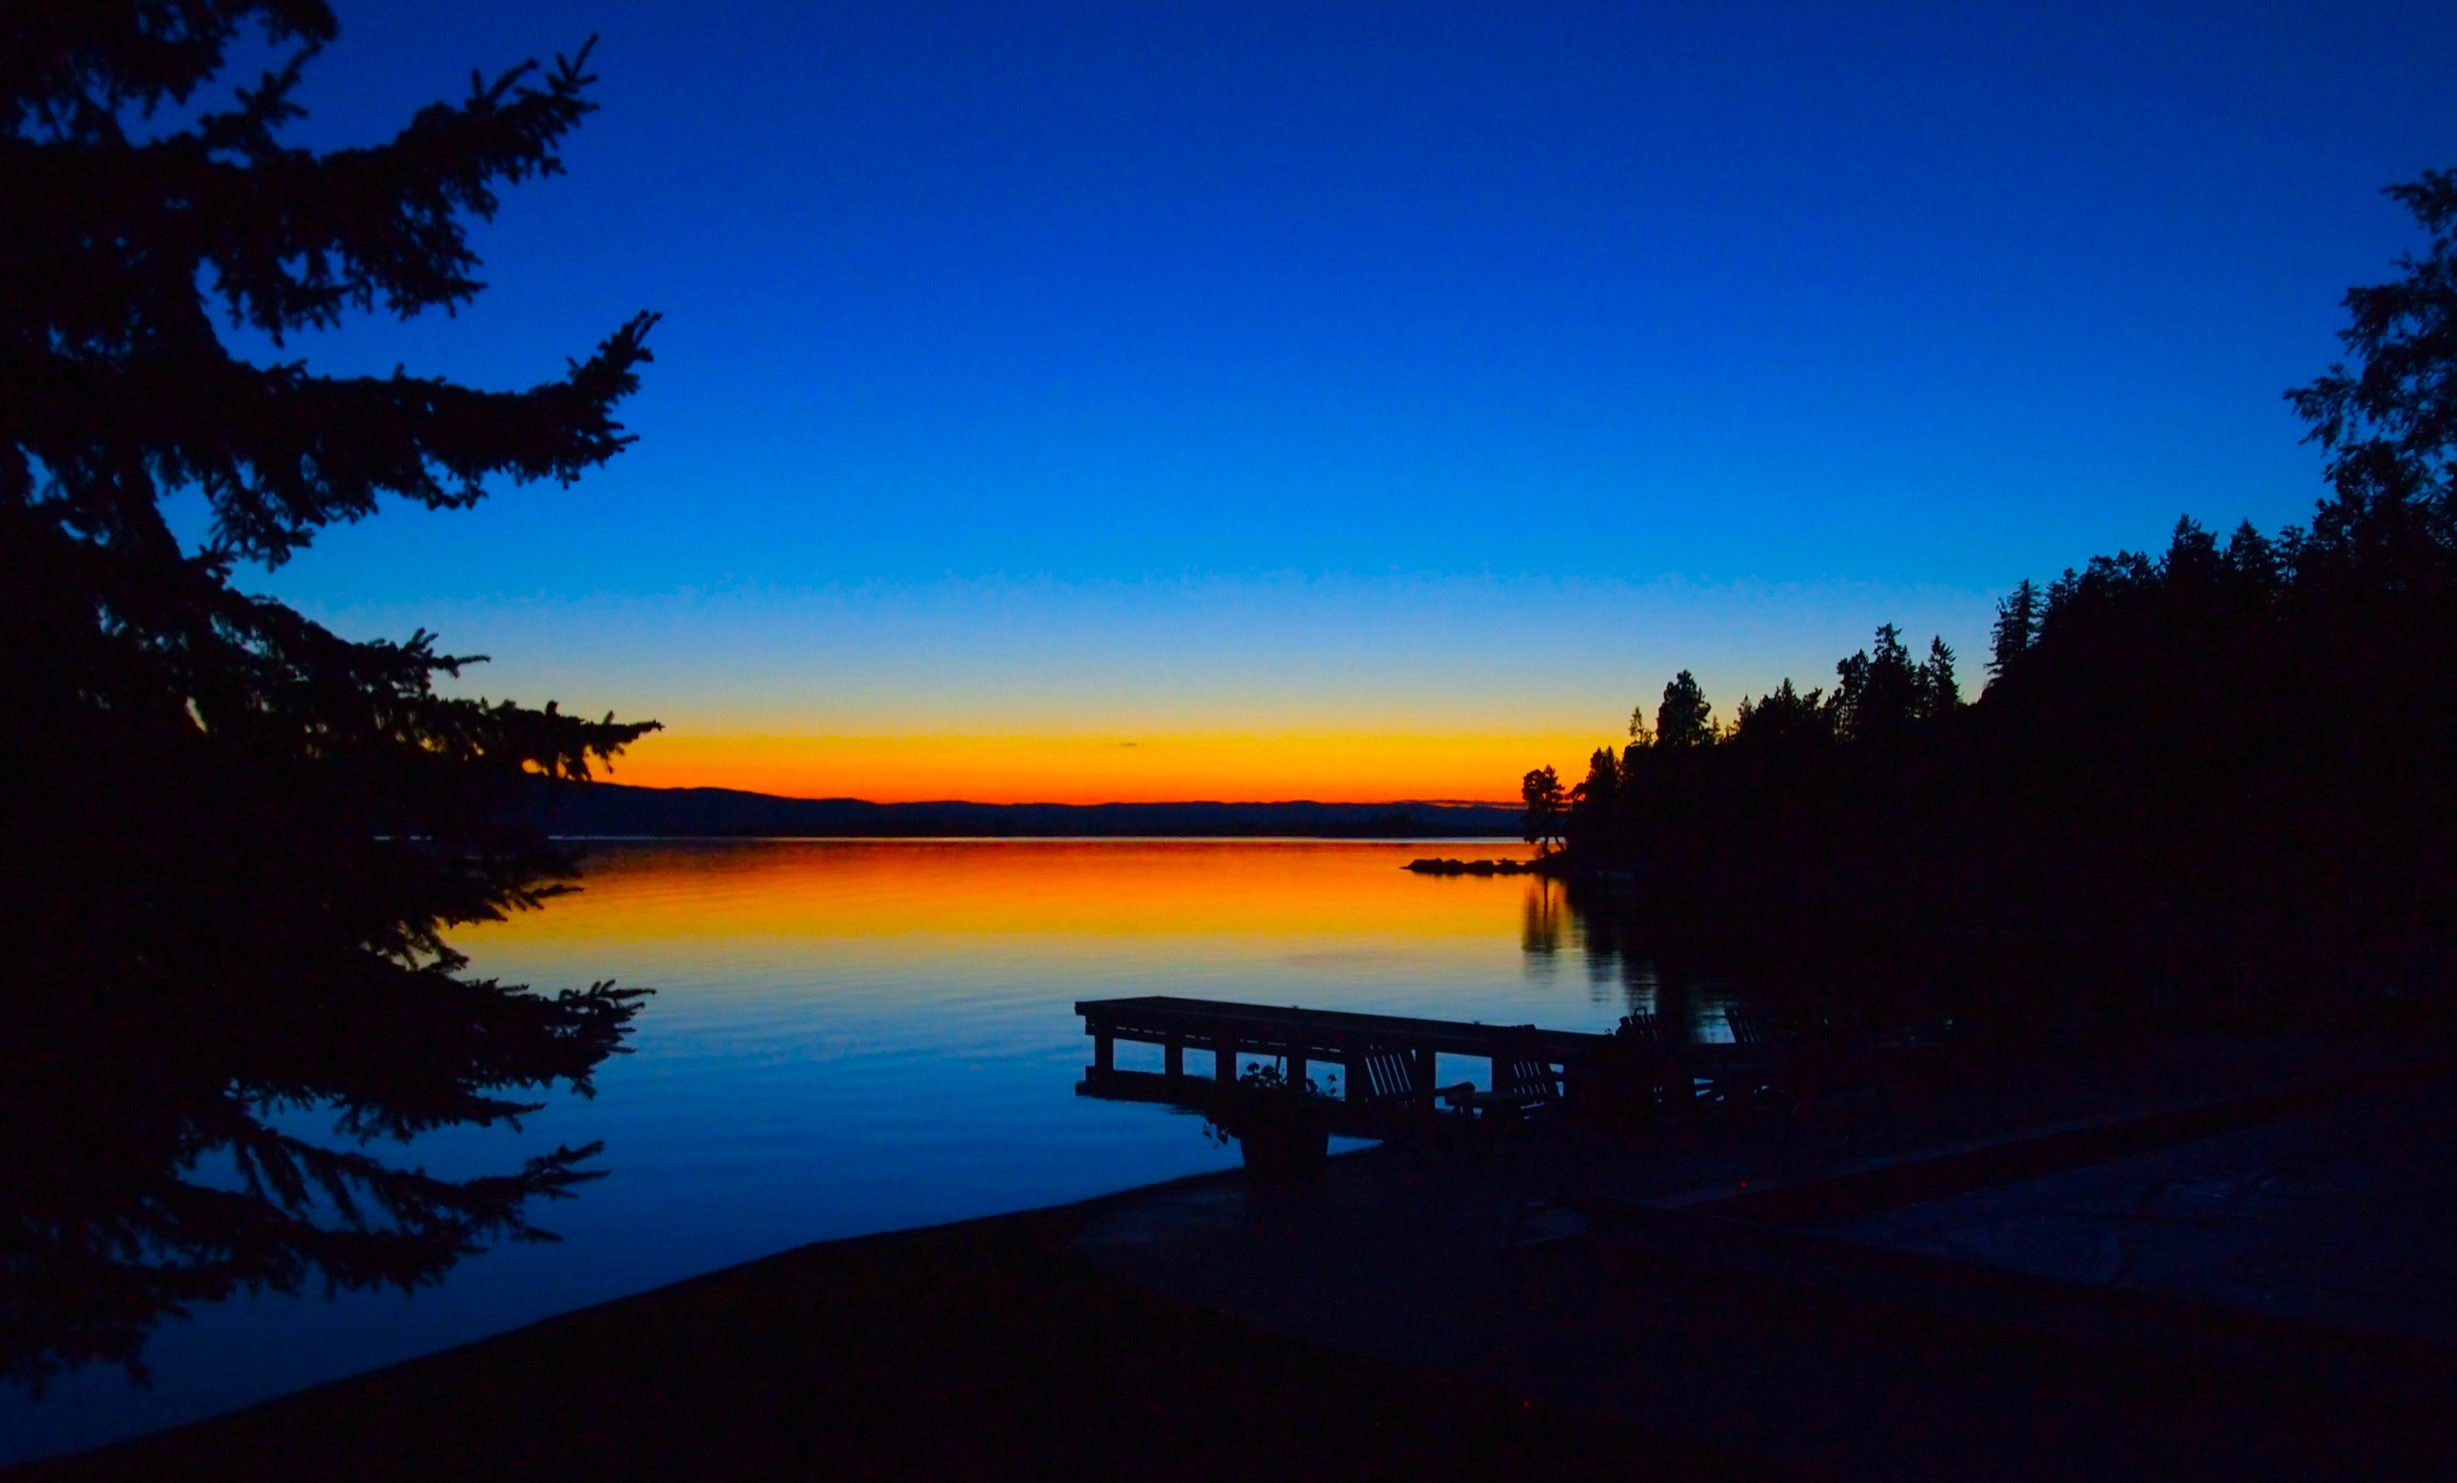 The sunset of all sunsets over Flathead Lake, the largest natural freshwater lake west of the Mississippi.